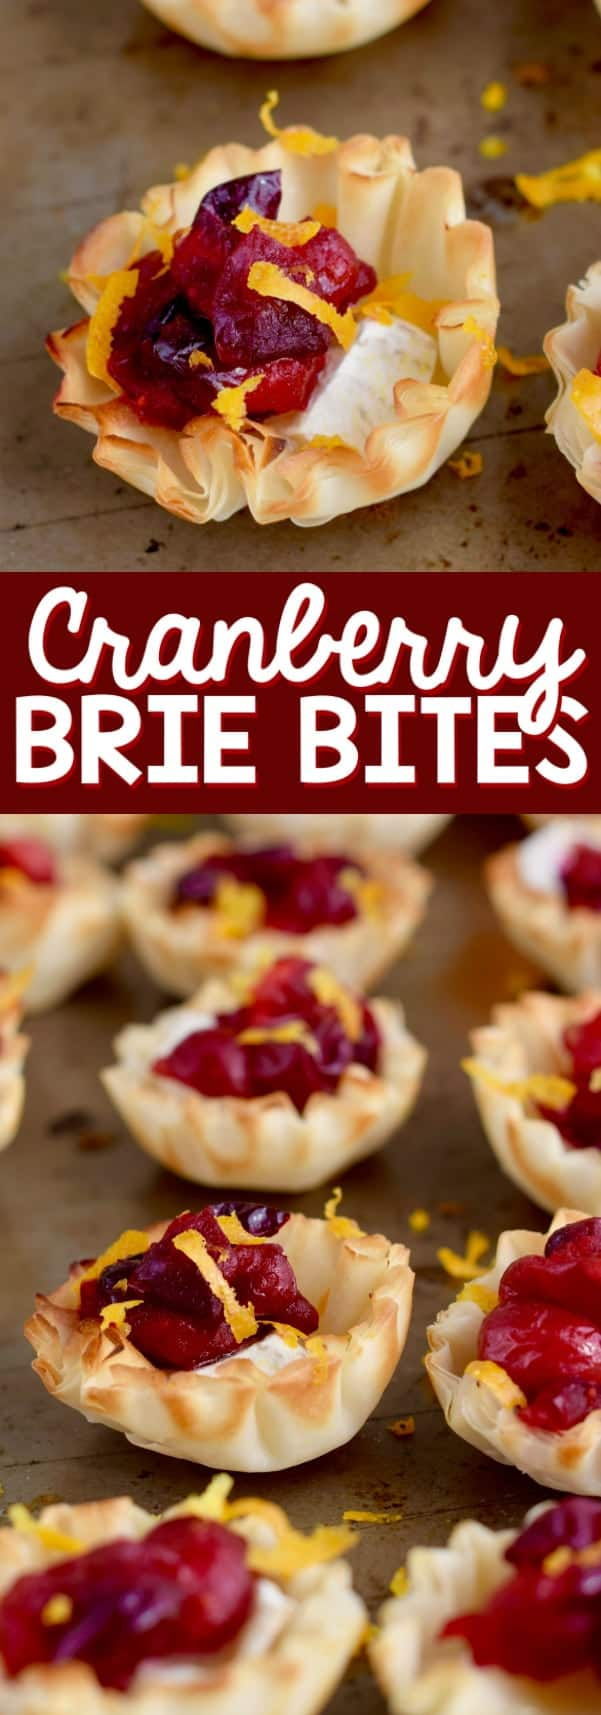 In little filo shells, cranberries and orange zest tops the brie cheese.